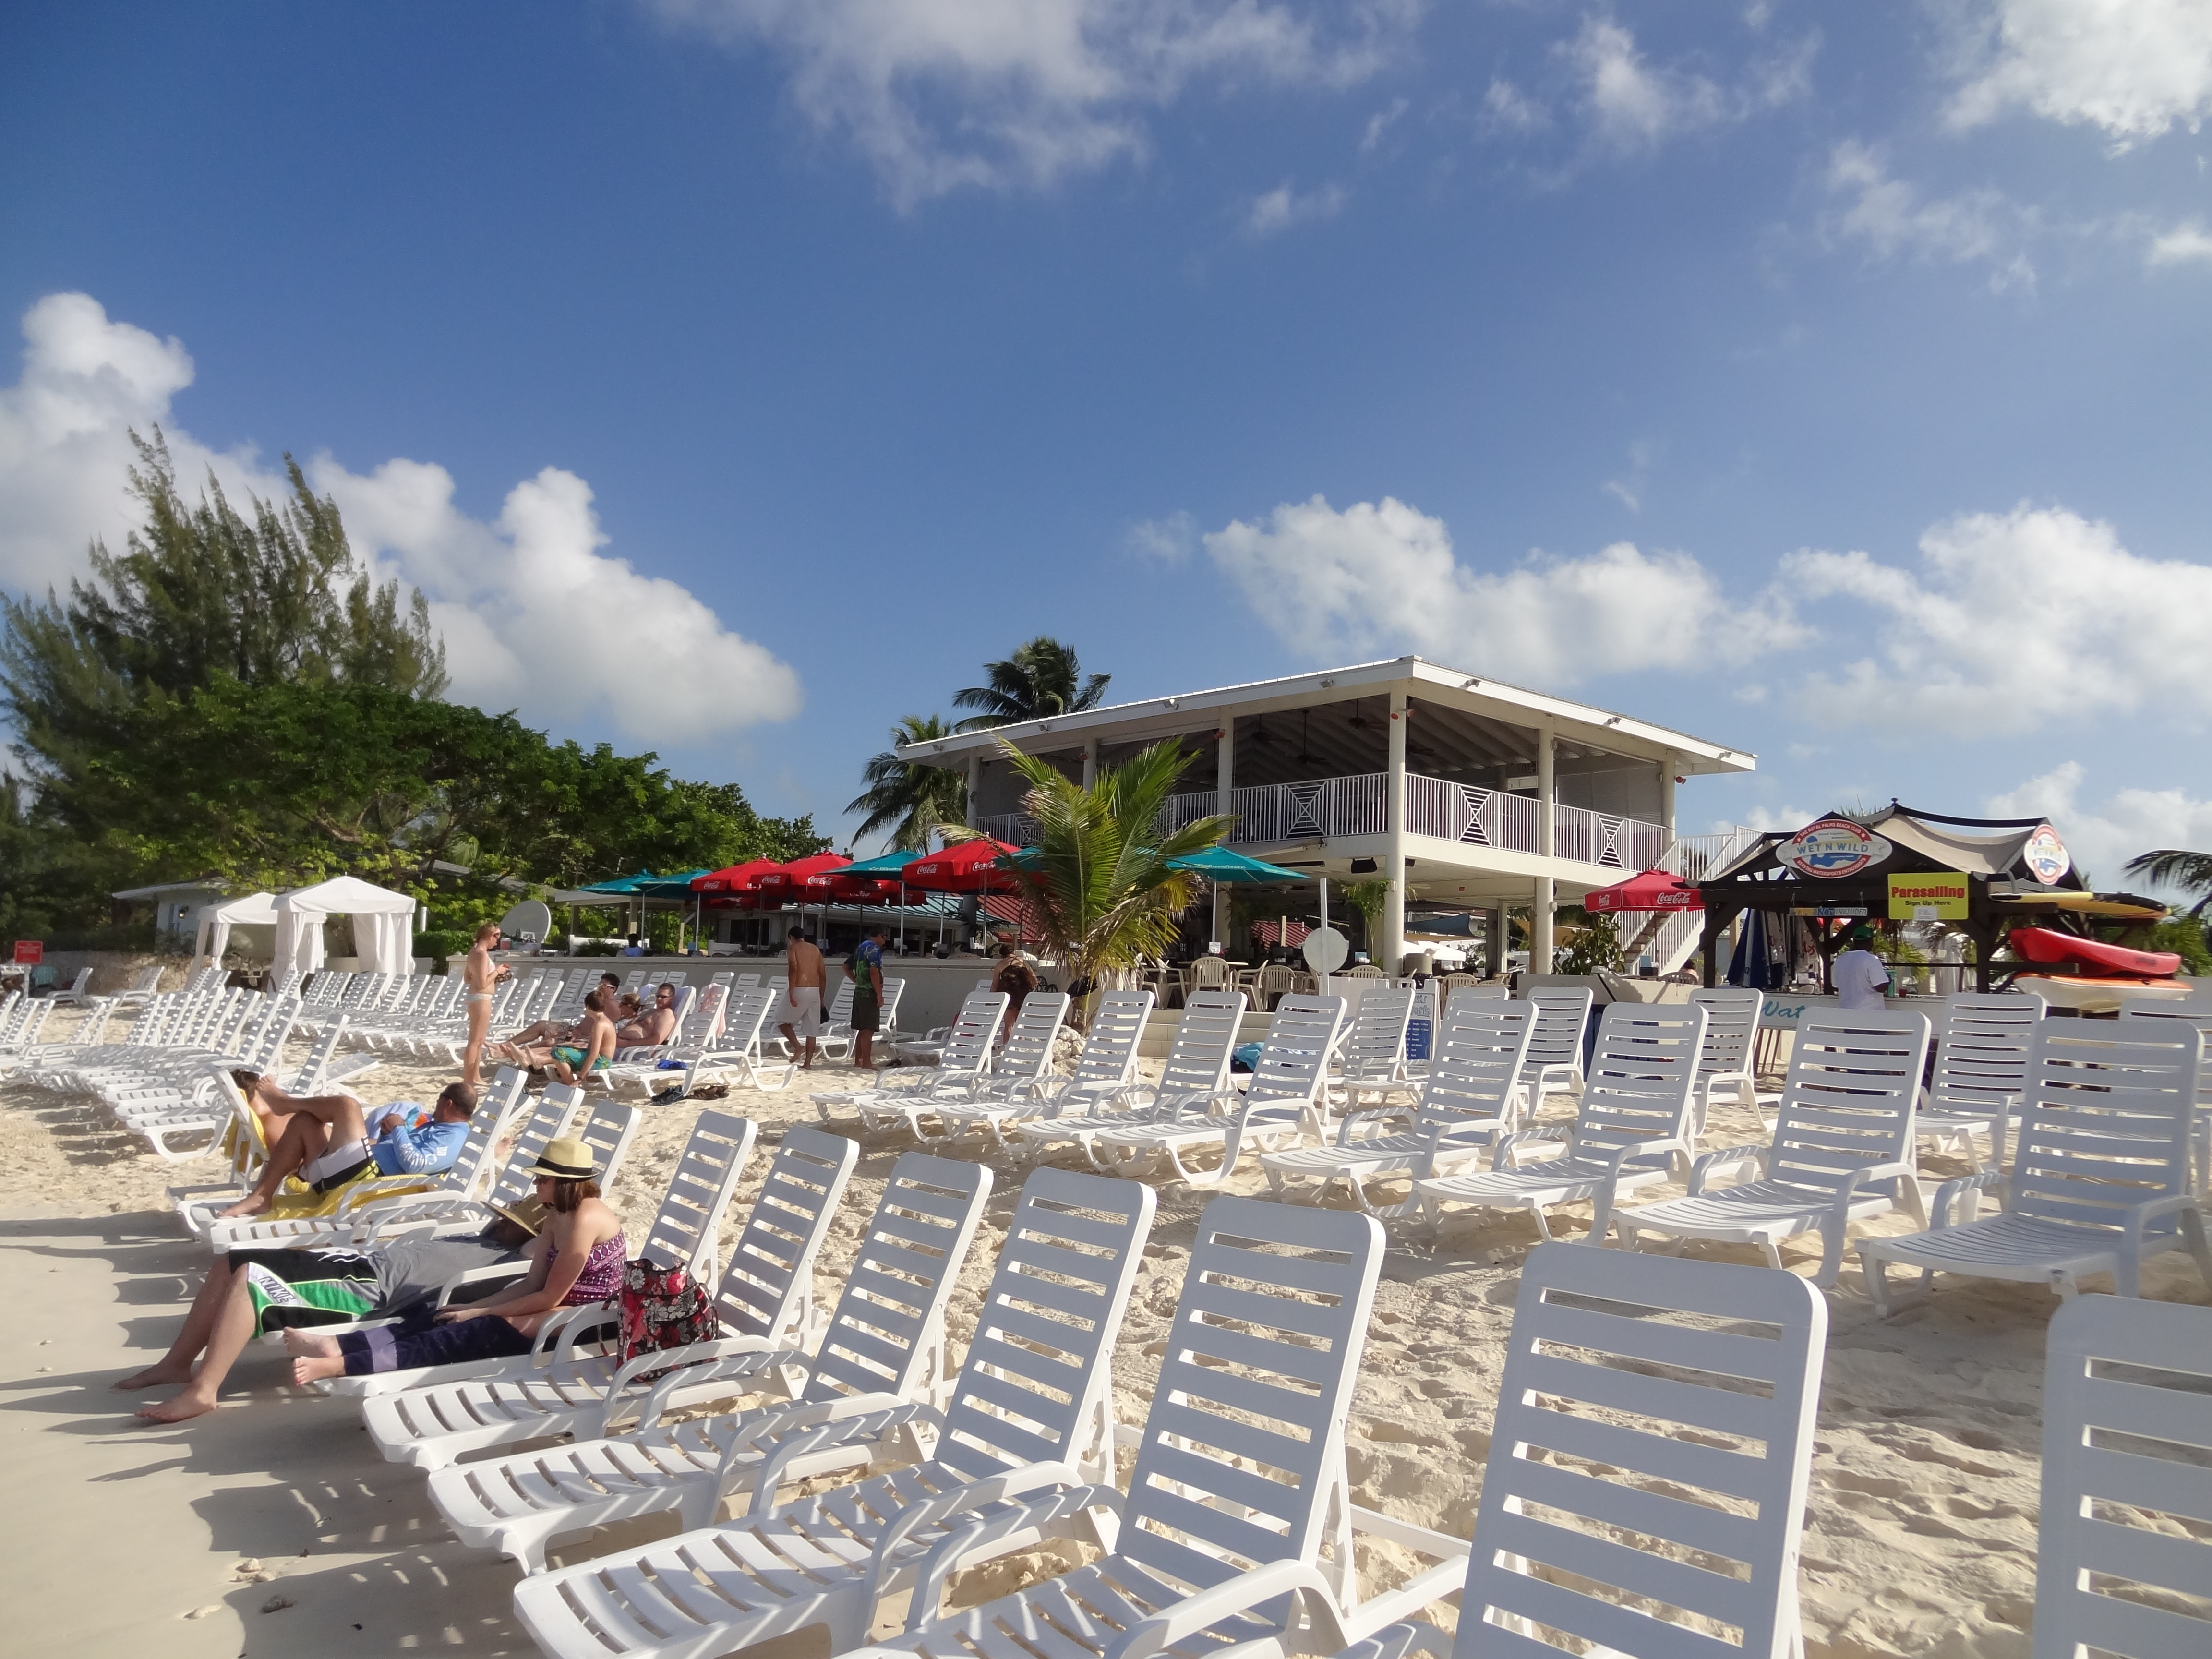 Best Beach Day Ever In Grand Cayman Ats Travels